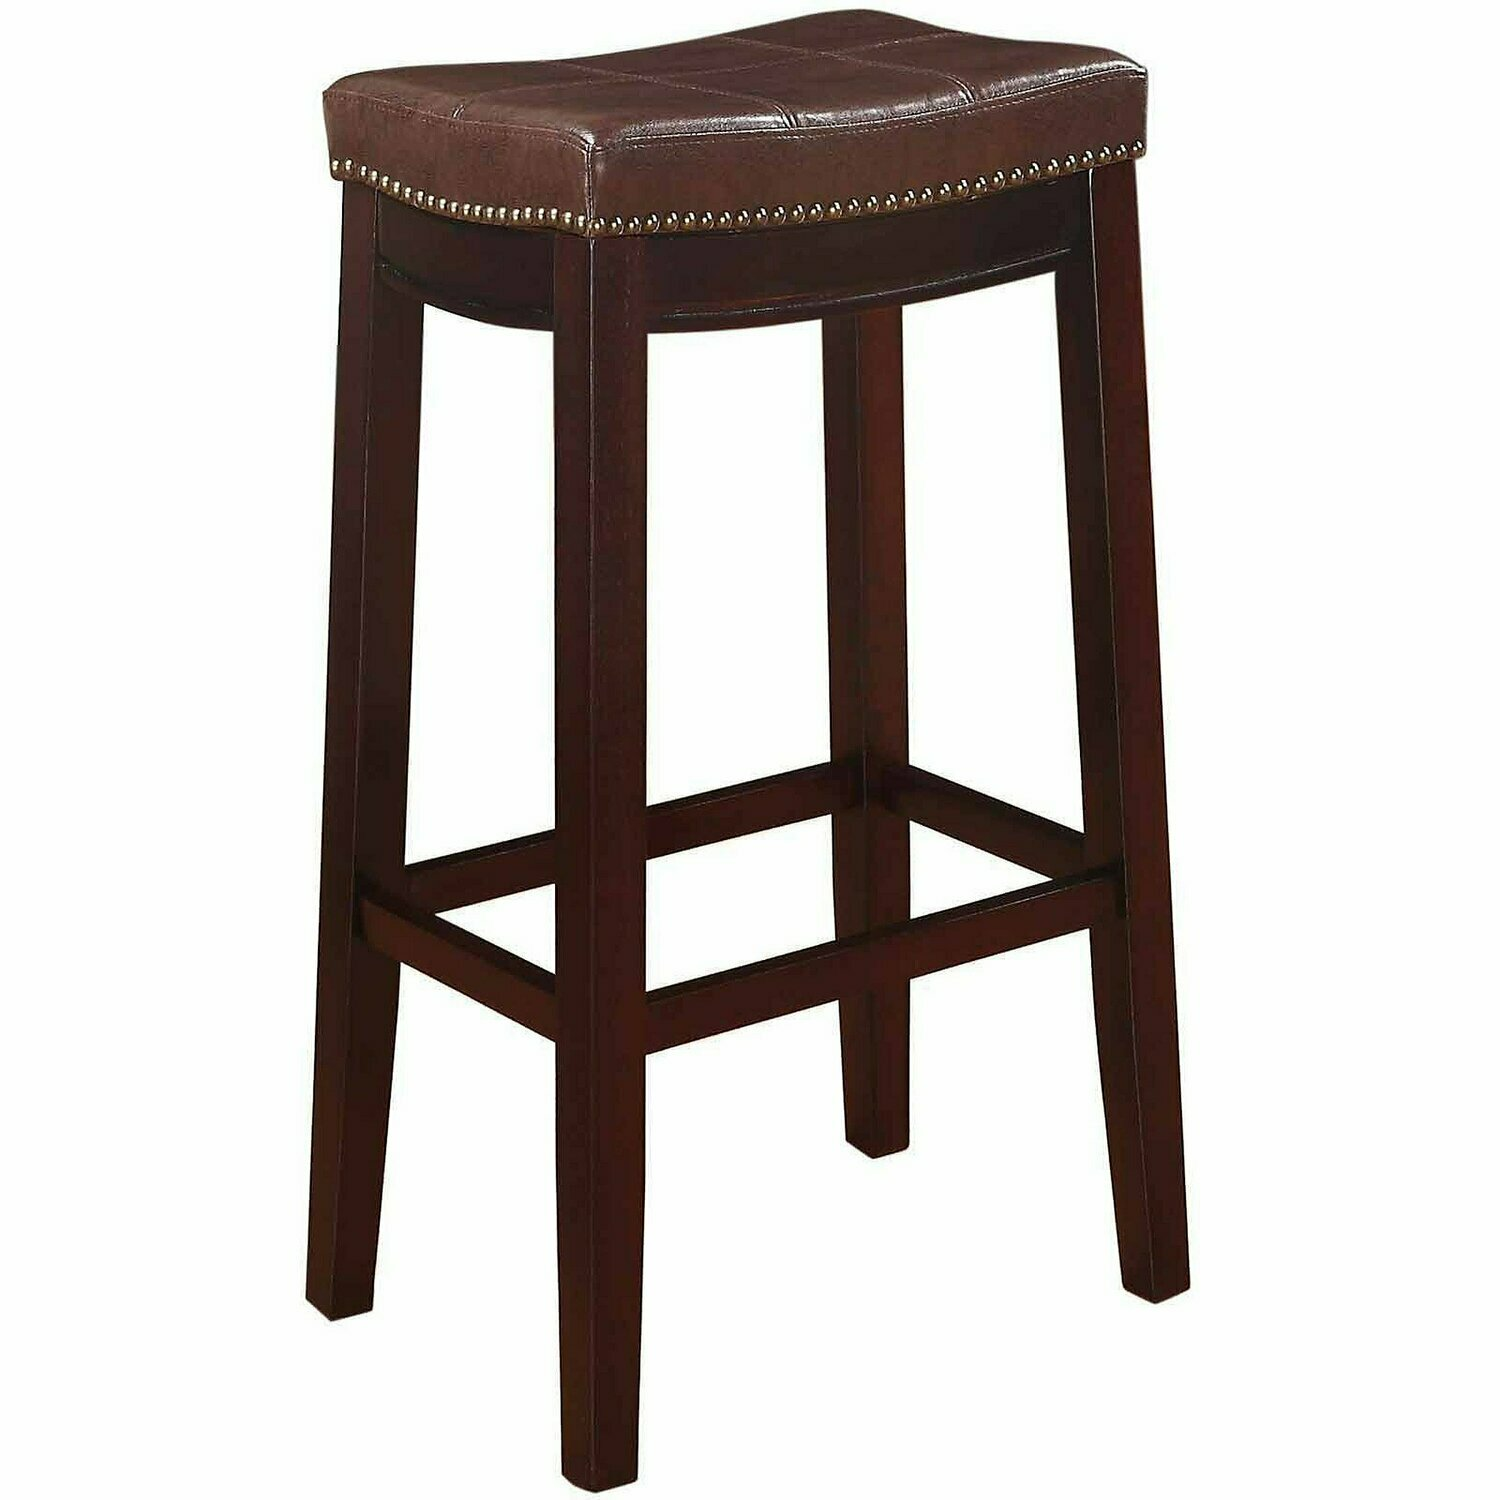 Bar Stool, 32 inch Seat Height, Brown